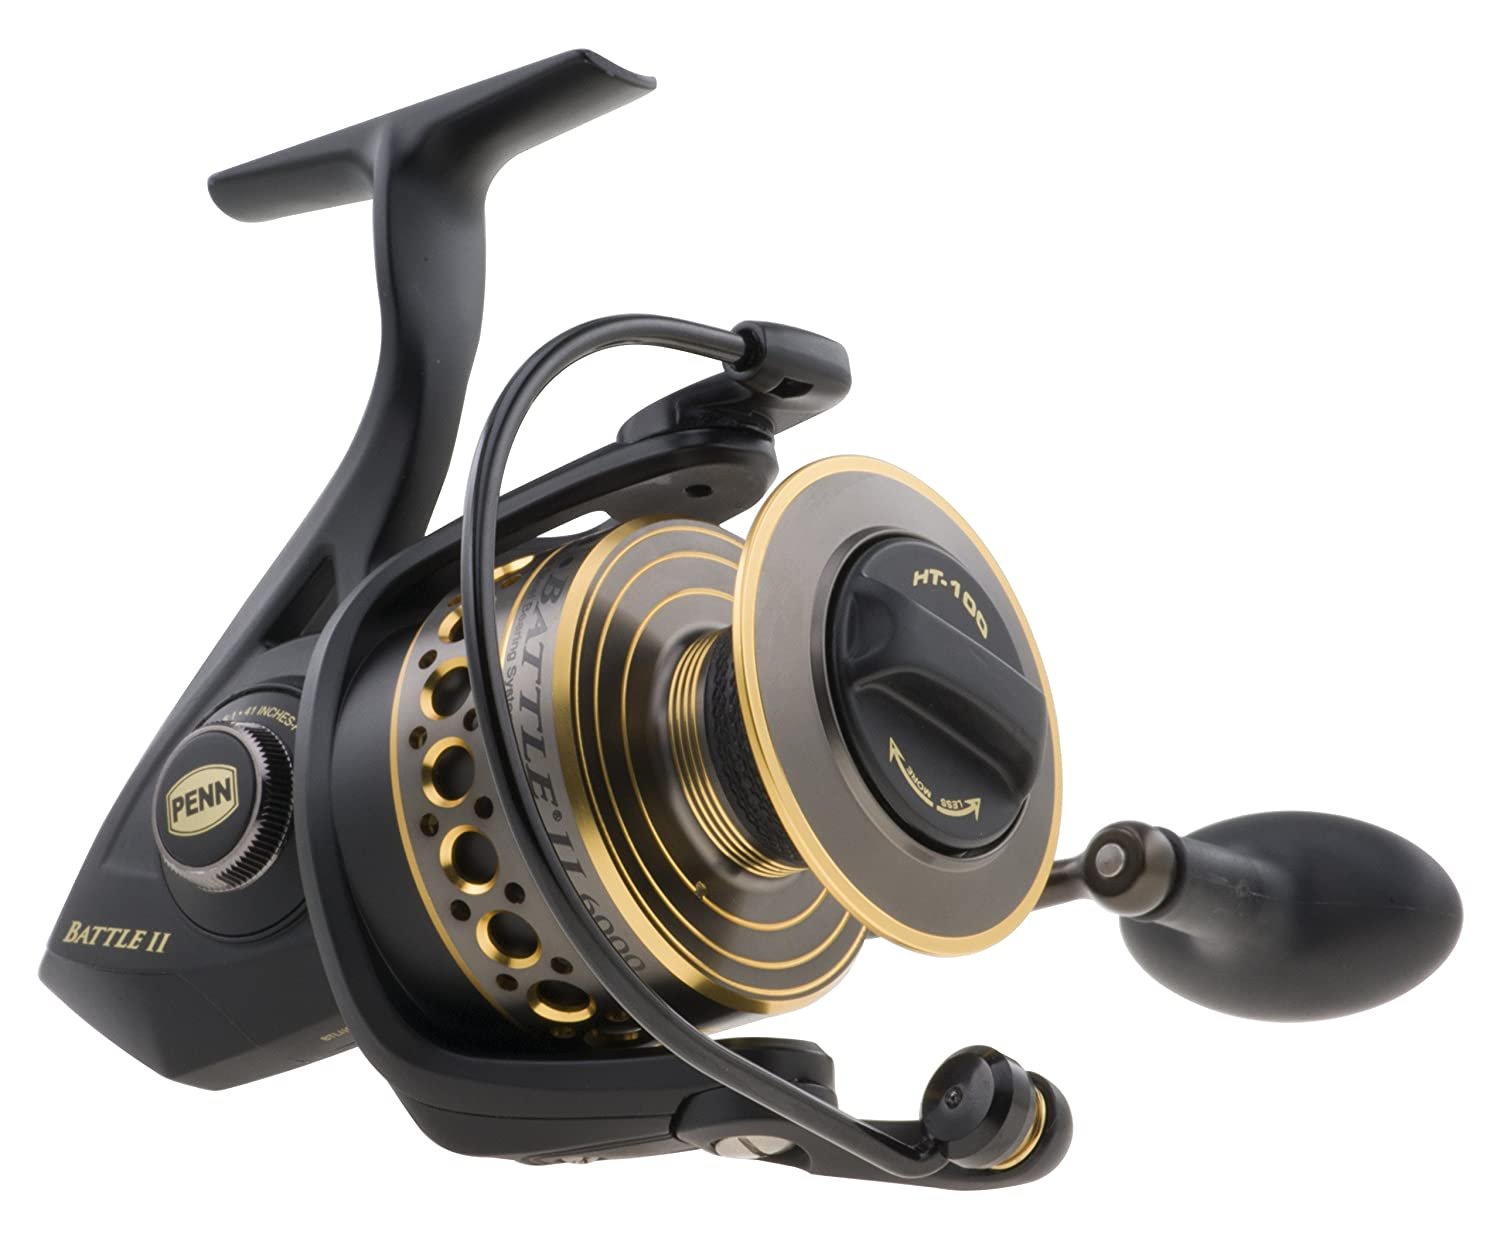 Penn Battle II Spinning Fishing Reel Black Friday Deals